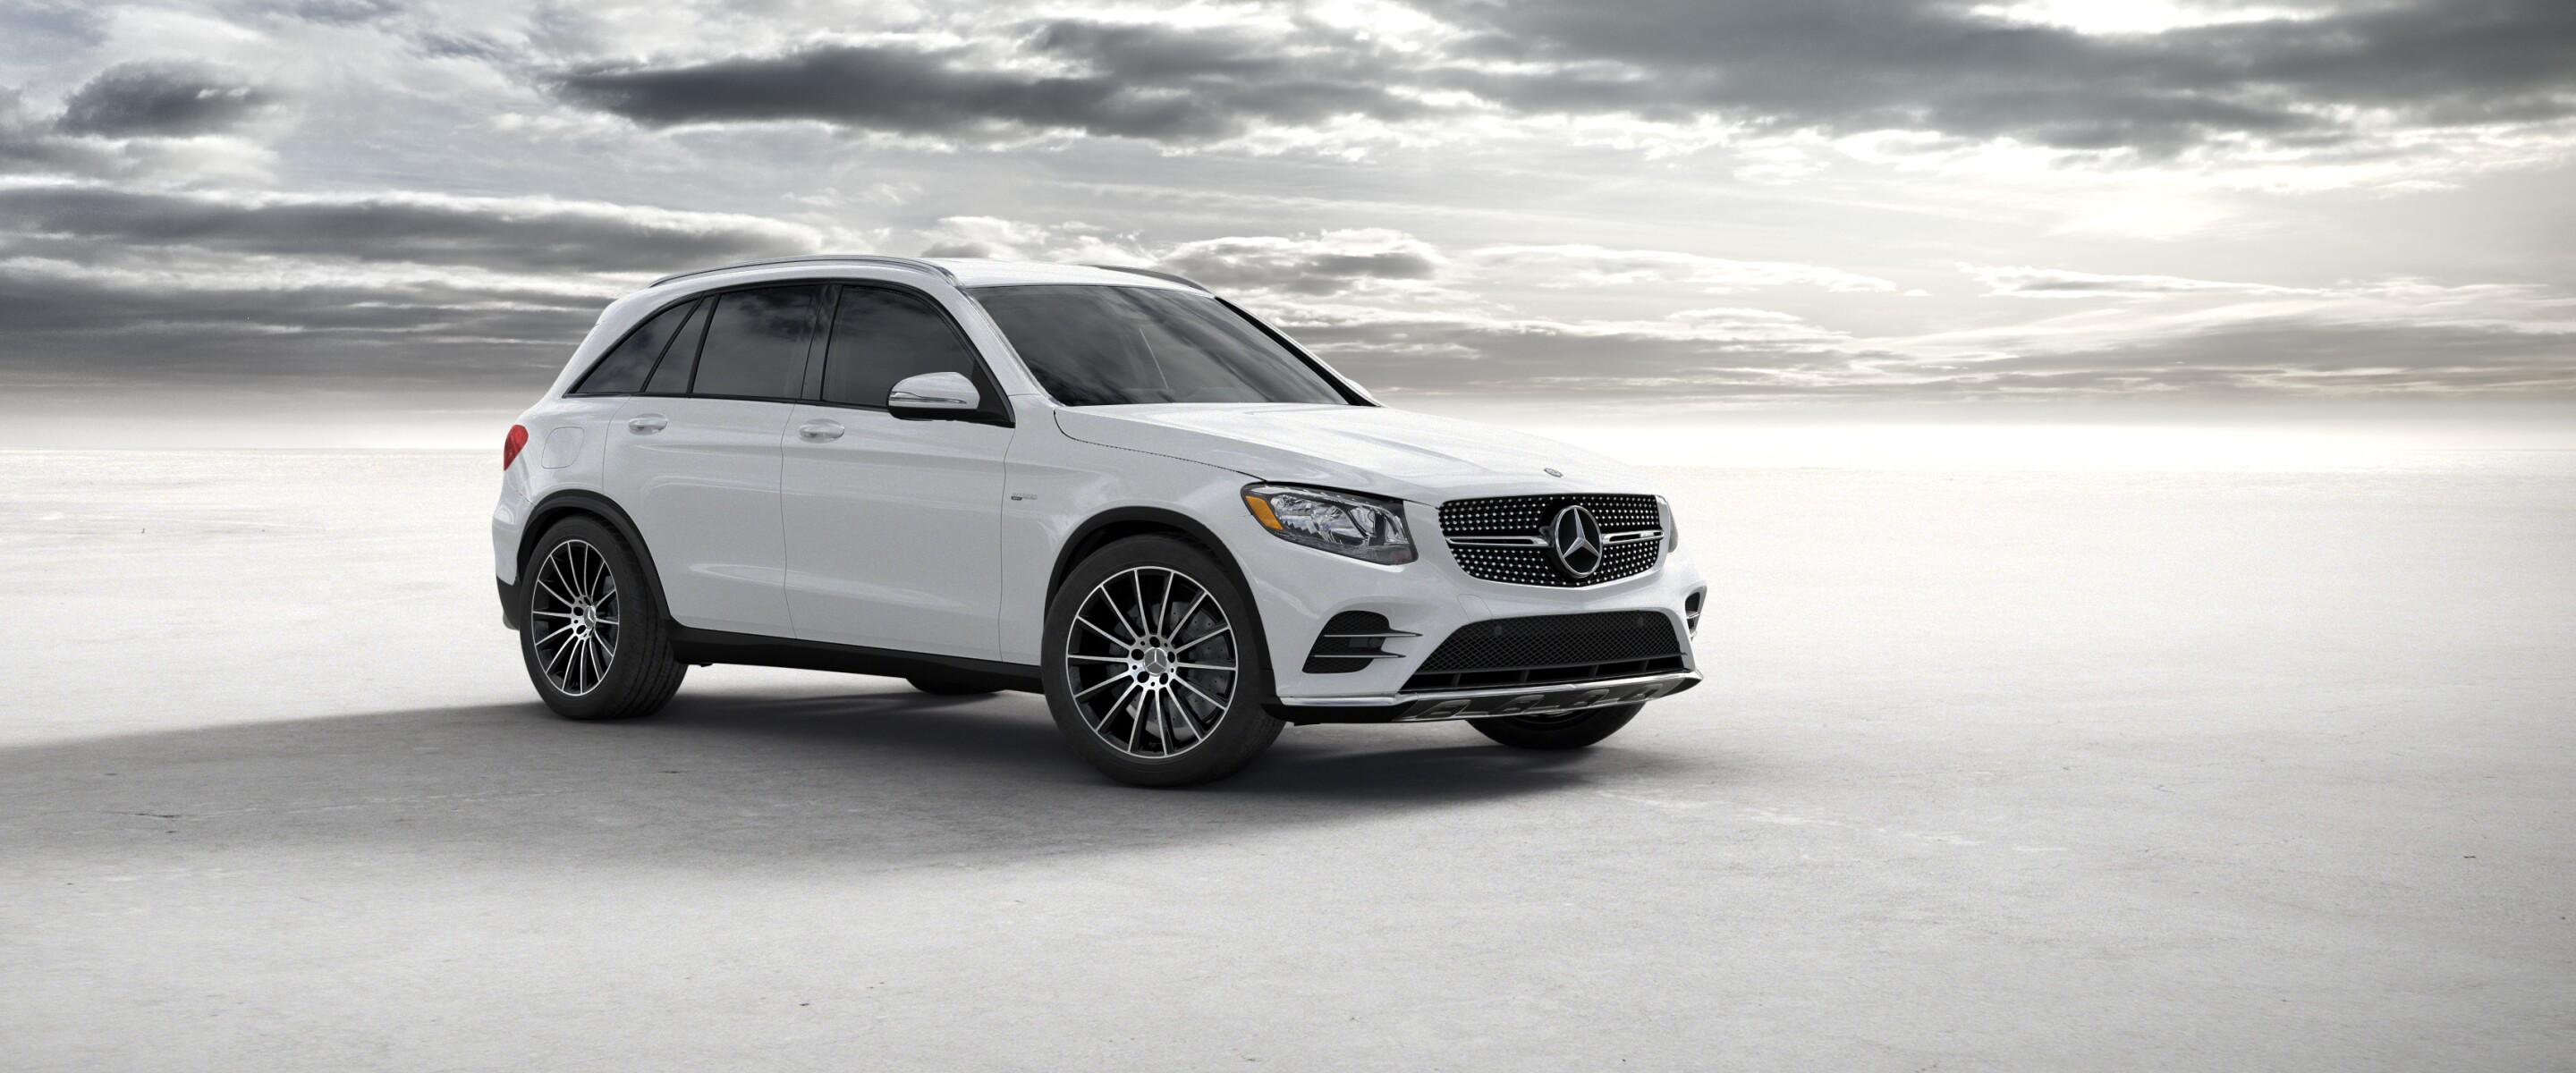 The mercedes benz glc43 amg aristocrat motors for Mercedes benz glc43 amg